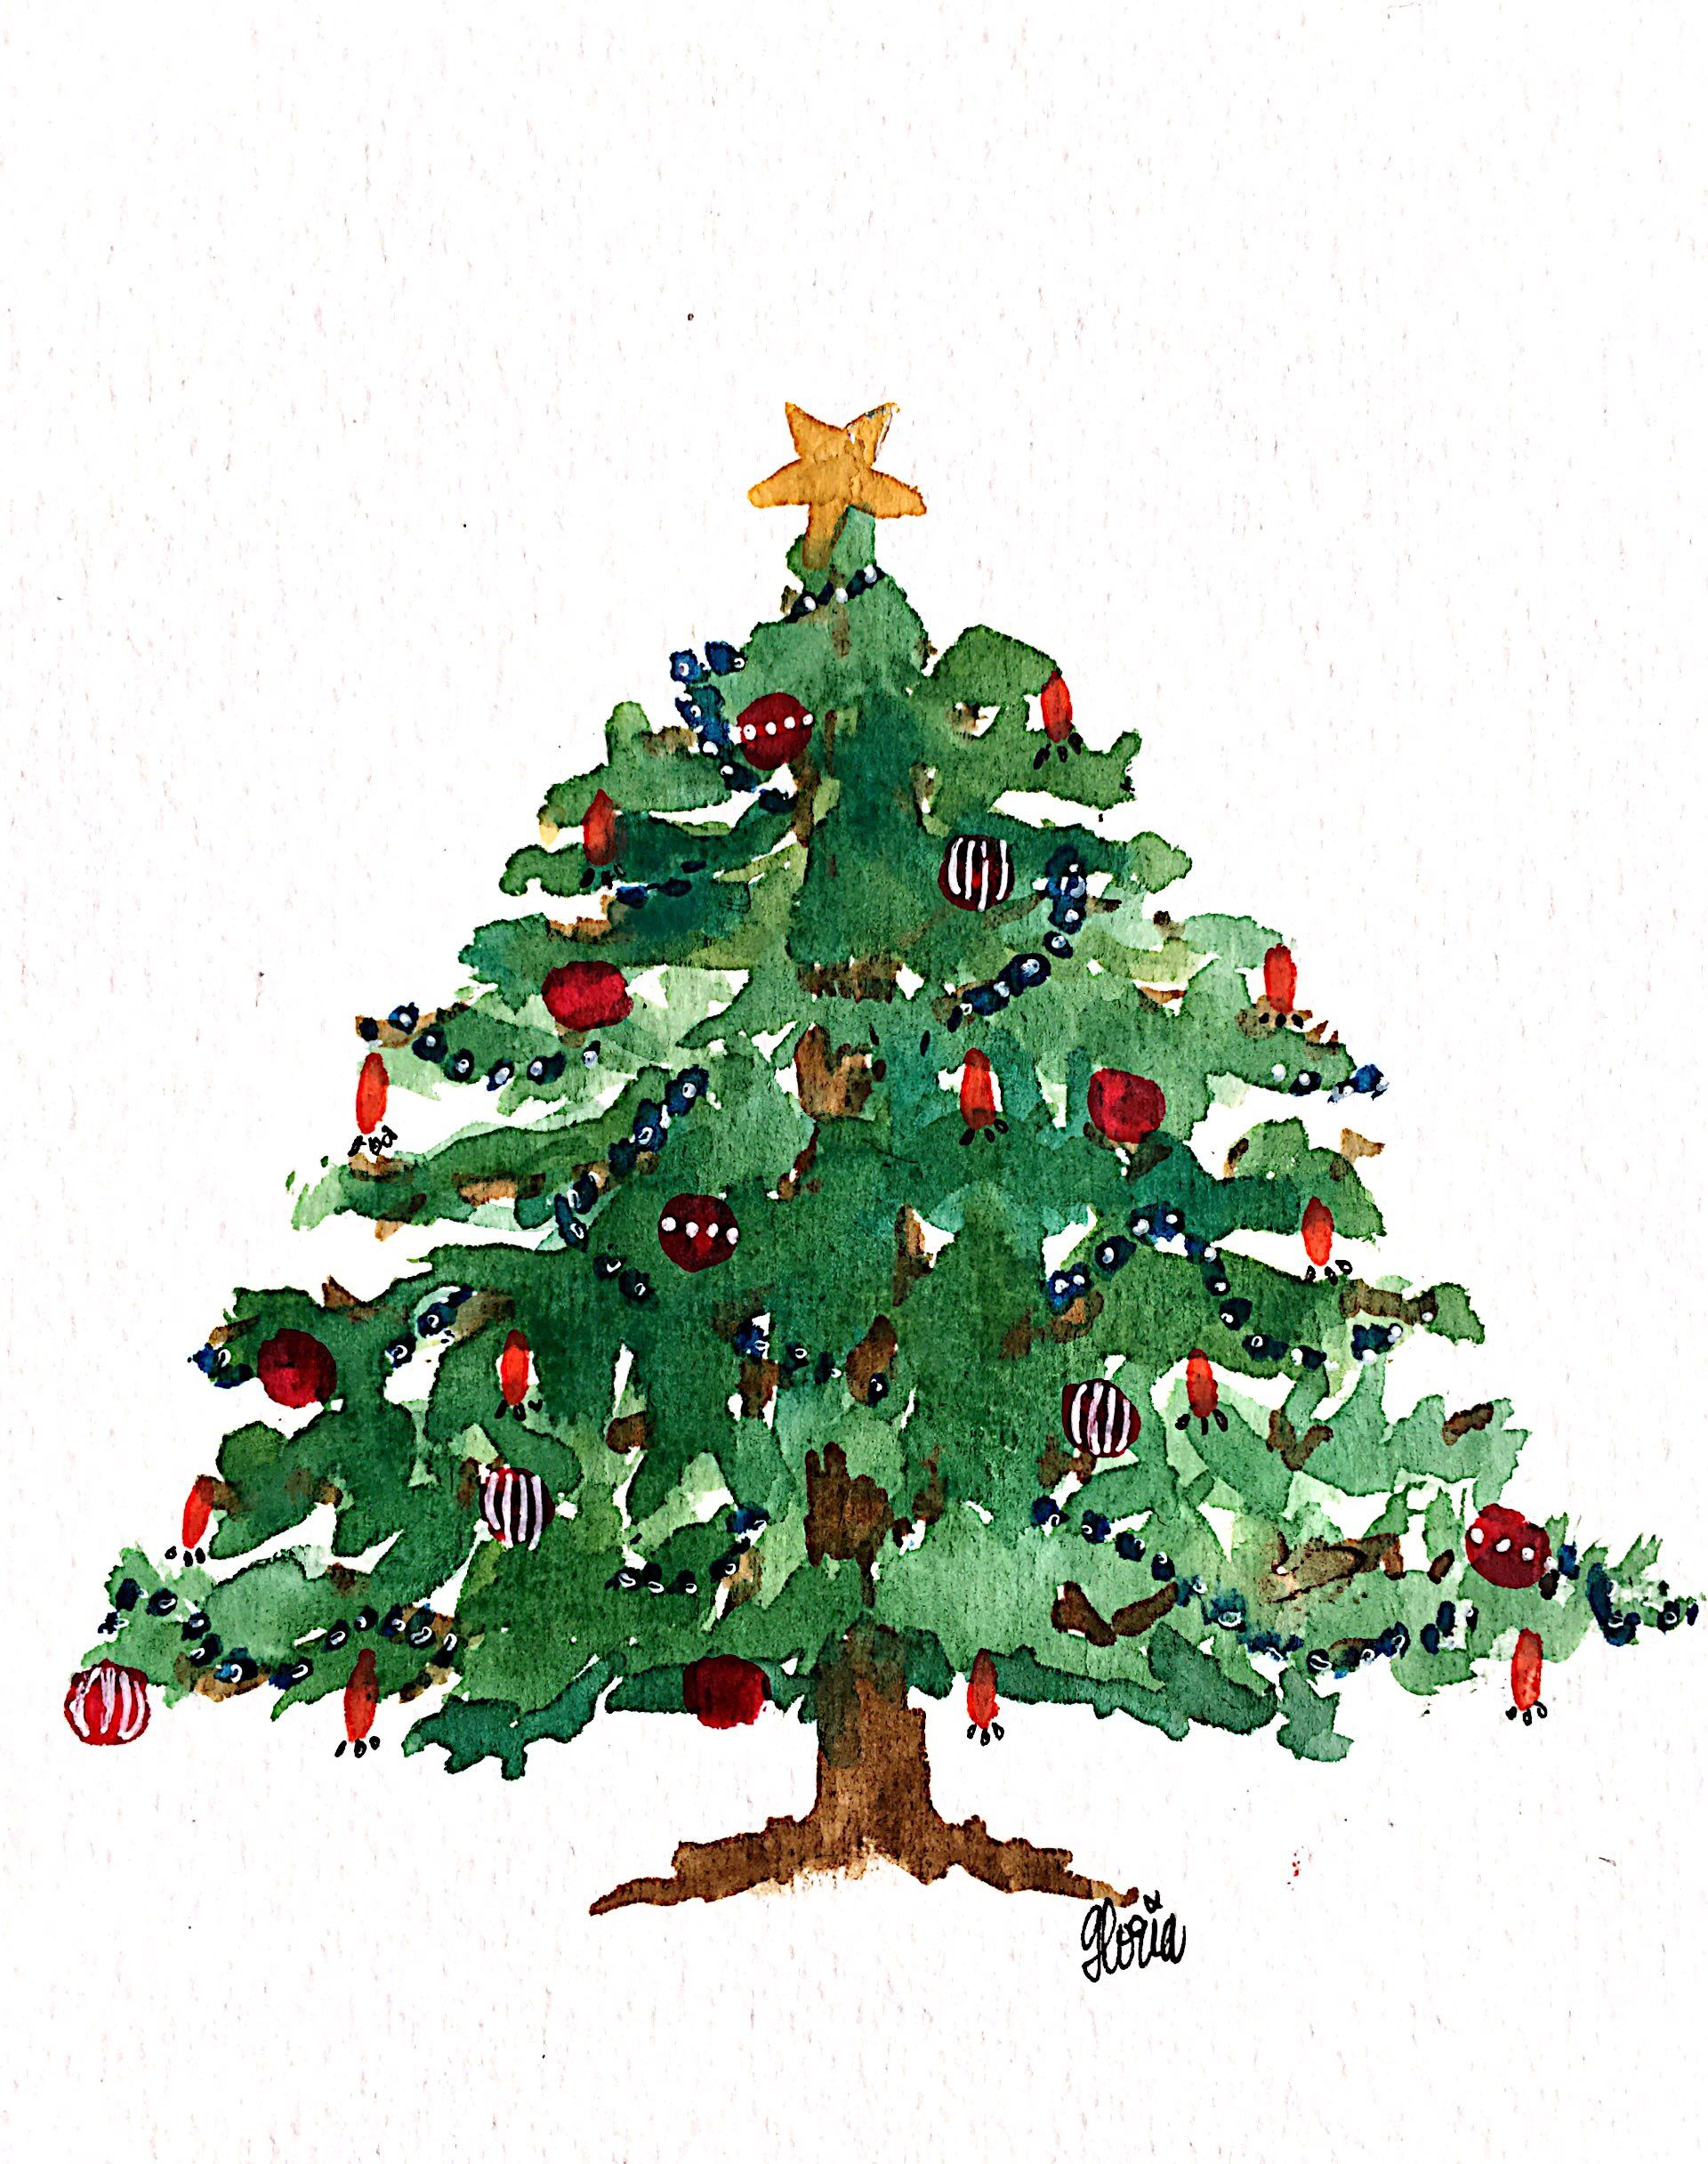 Tree Drawing With Watercolor Gloriori Christmas Illustration Watercolor Tree